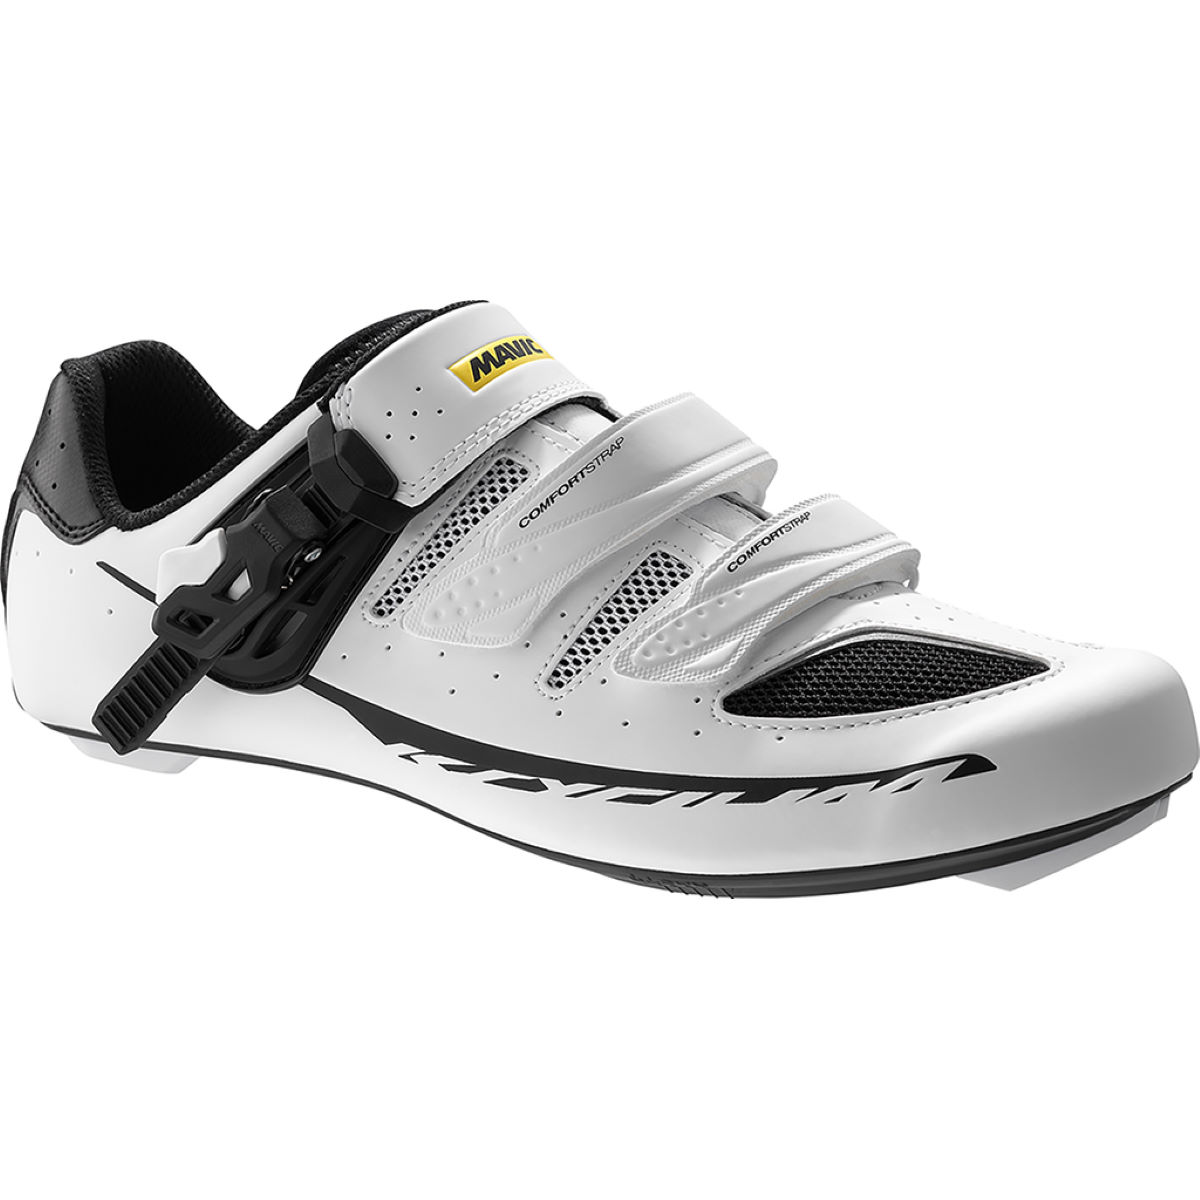 Chaussures Mavic Ksyrium Elite Maxi Fit II - 9 UK Blanc Chaussures de route